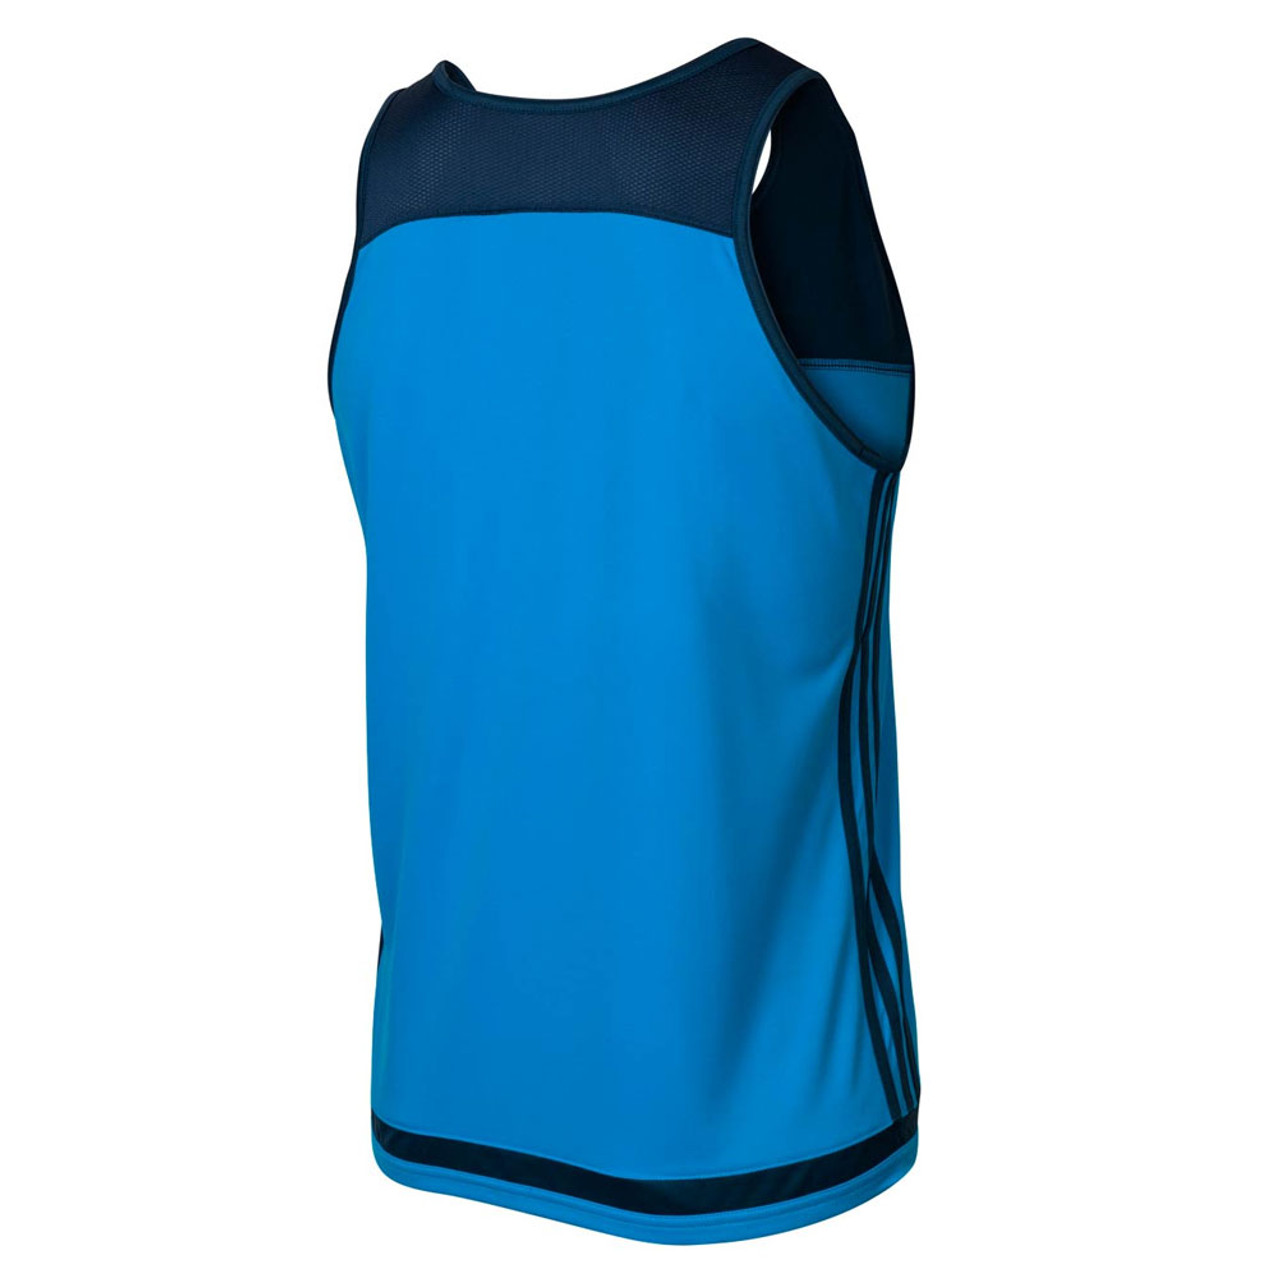 05069252379 ADIDAS blues rugby performance singlet [blue/navy]